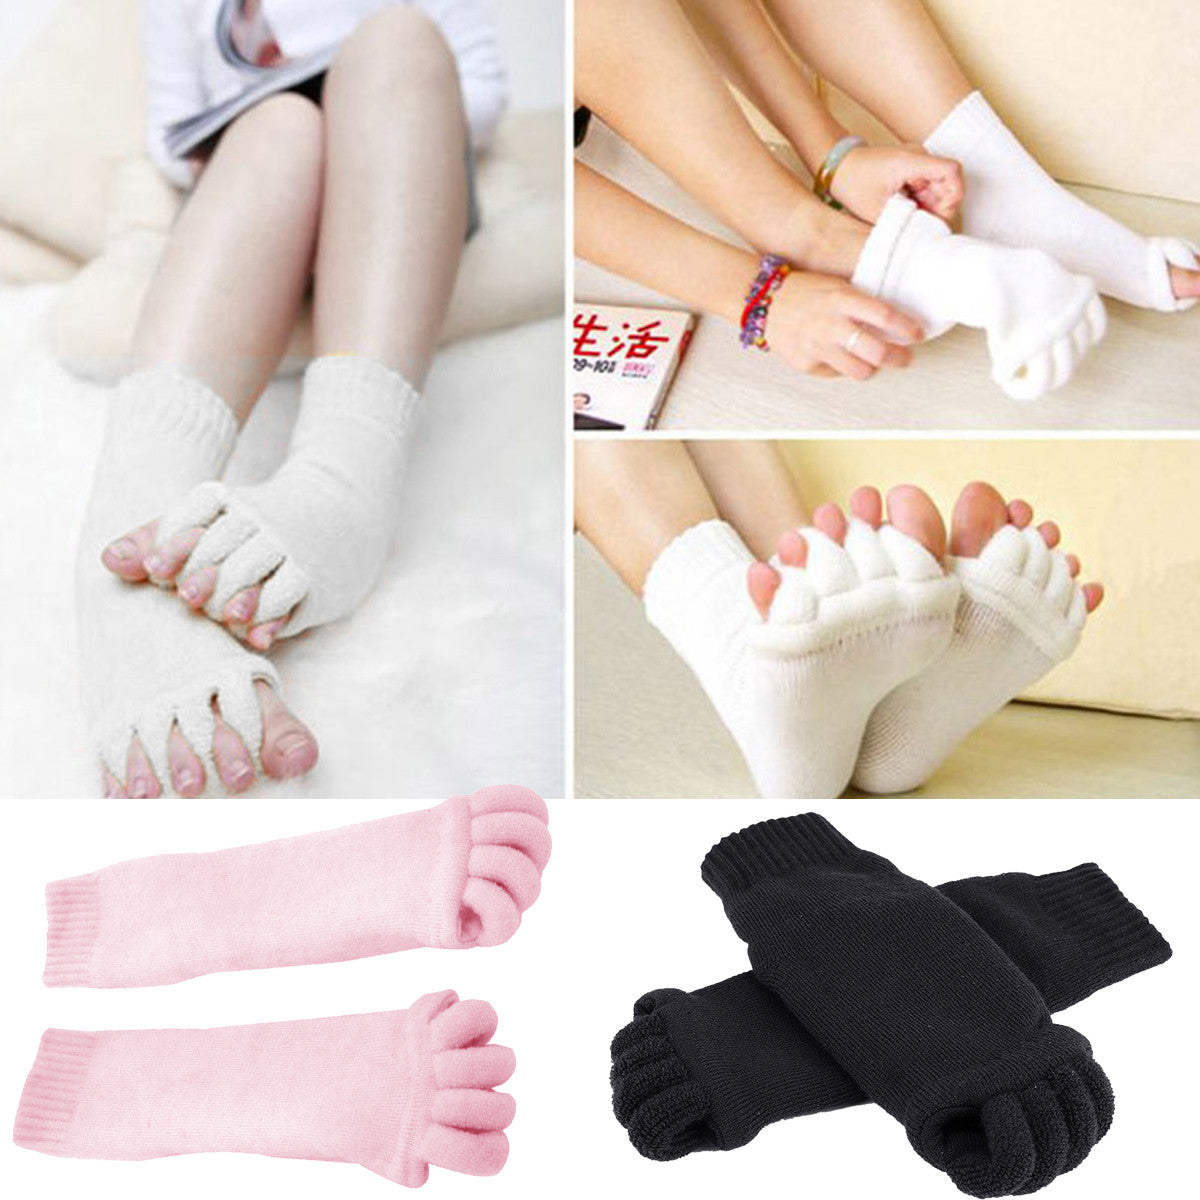 1 Pair Five Toe Separator Socks Pedicure Sock GYM Massage SPA Yoga Foot Alignment Socks For Pain Relief Pedicure Care